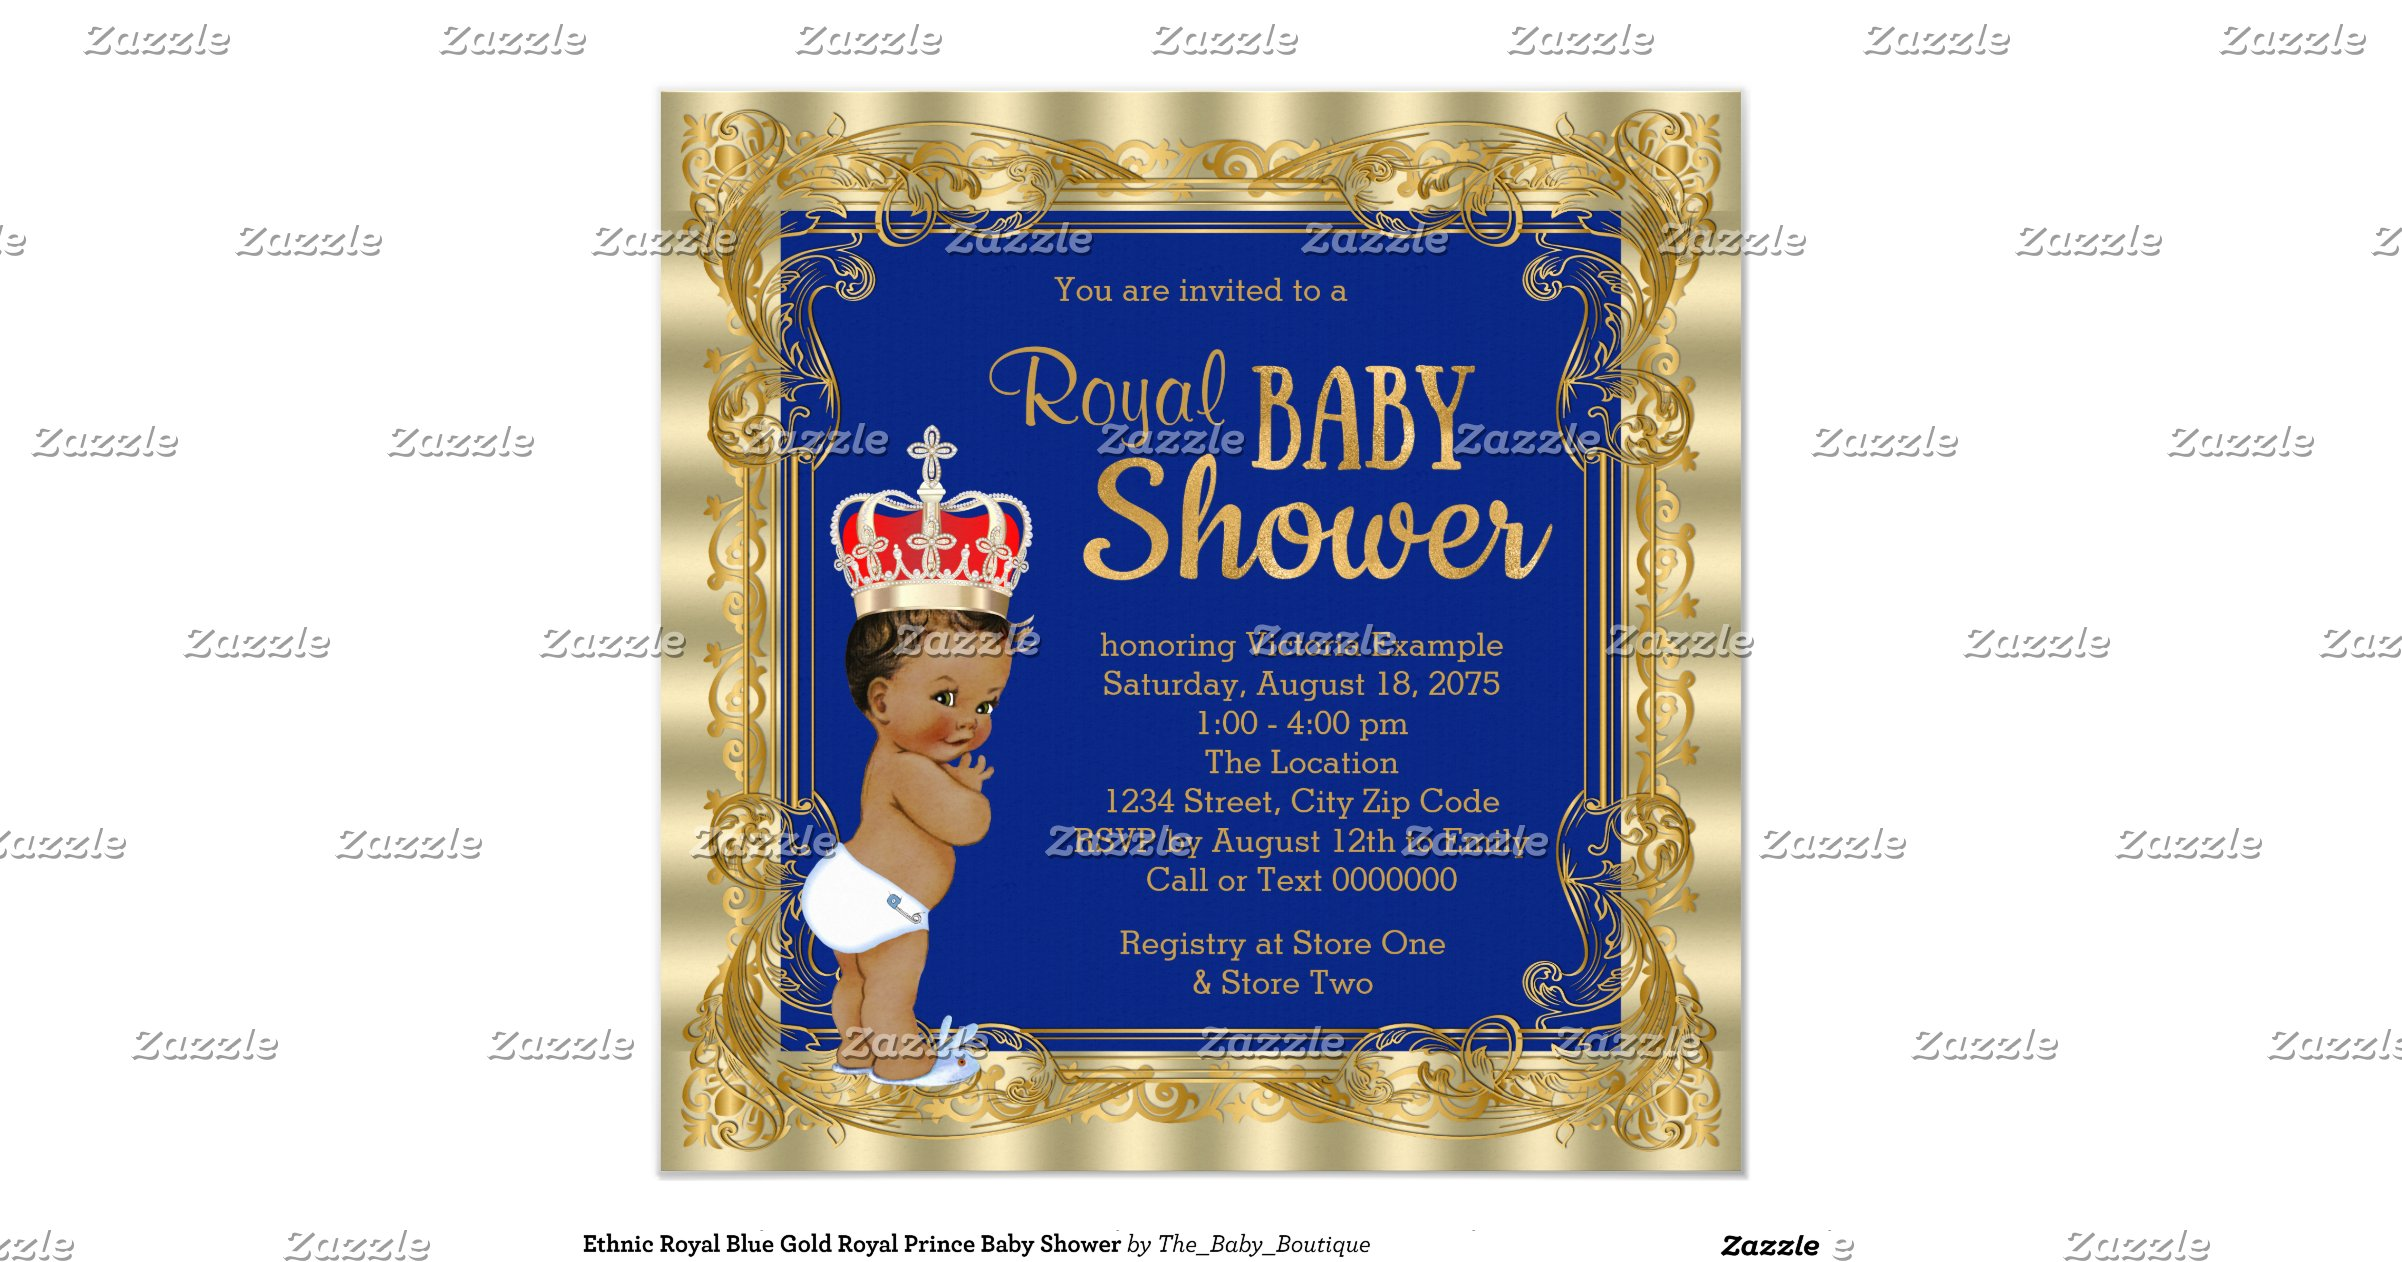 ethnic royal blue gold royal prince baby shower invitation